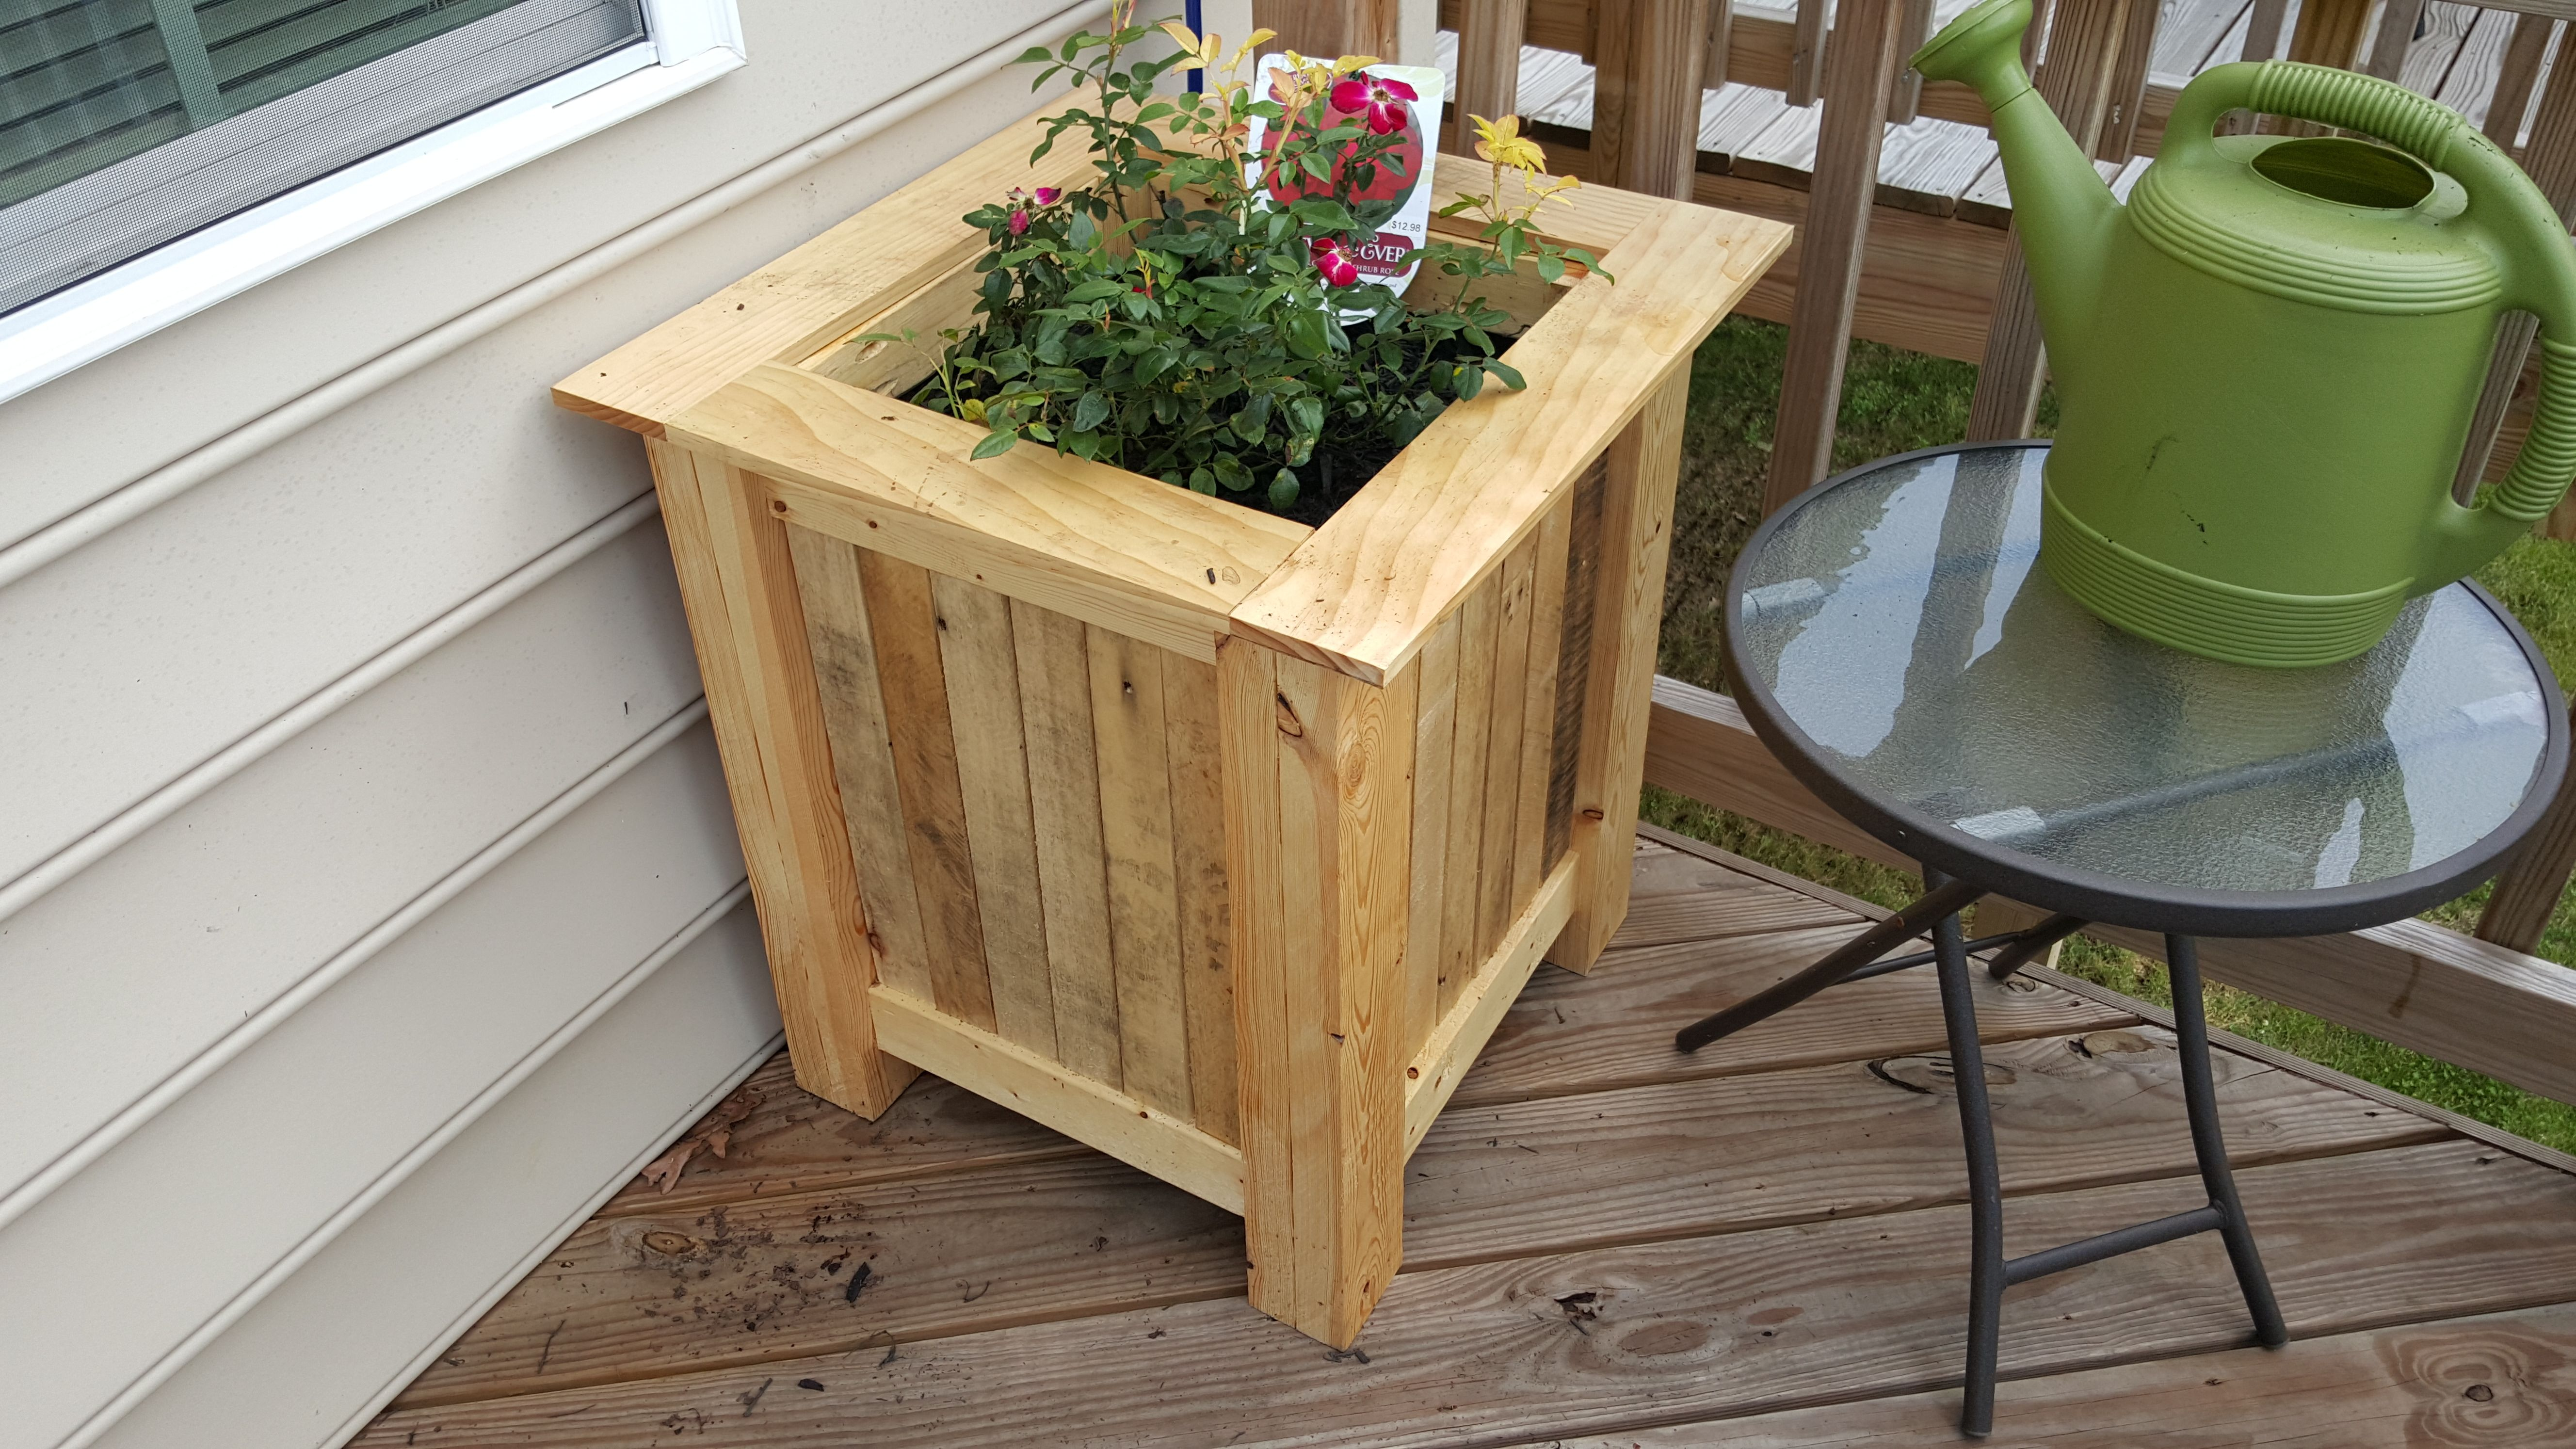 I built a version of Steve Ramsey's planter box. I built